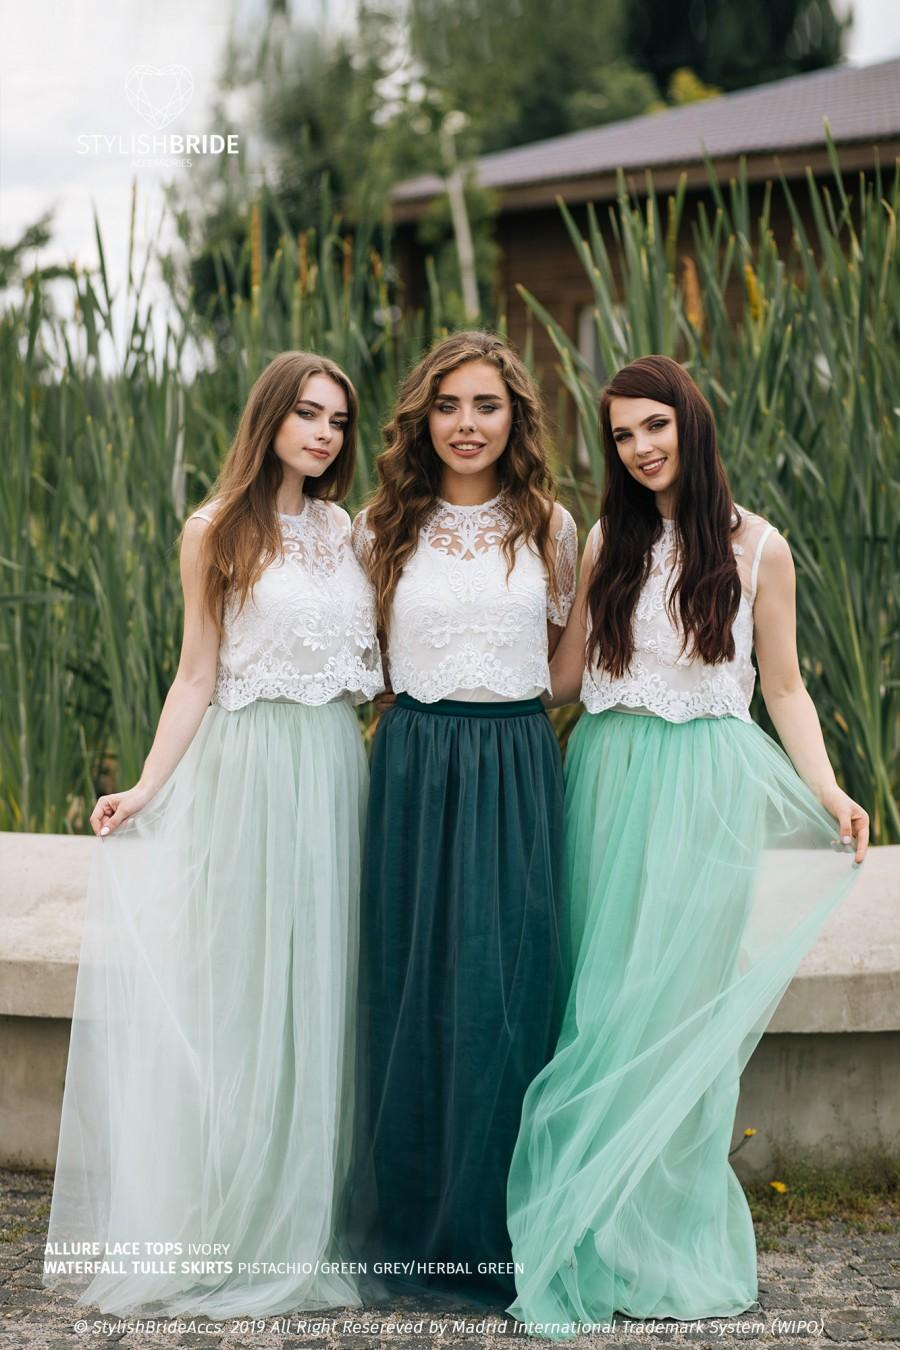 Wedding - Boho Green Grey Palette Bridesmaid Separates 2020: Pistachio/Green Grey/Herbal Green Waterfall Tulle Skirt and Allure Lace Tops Plus Size